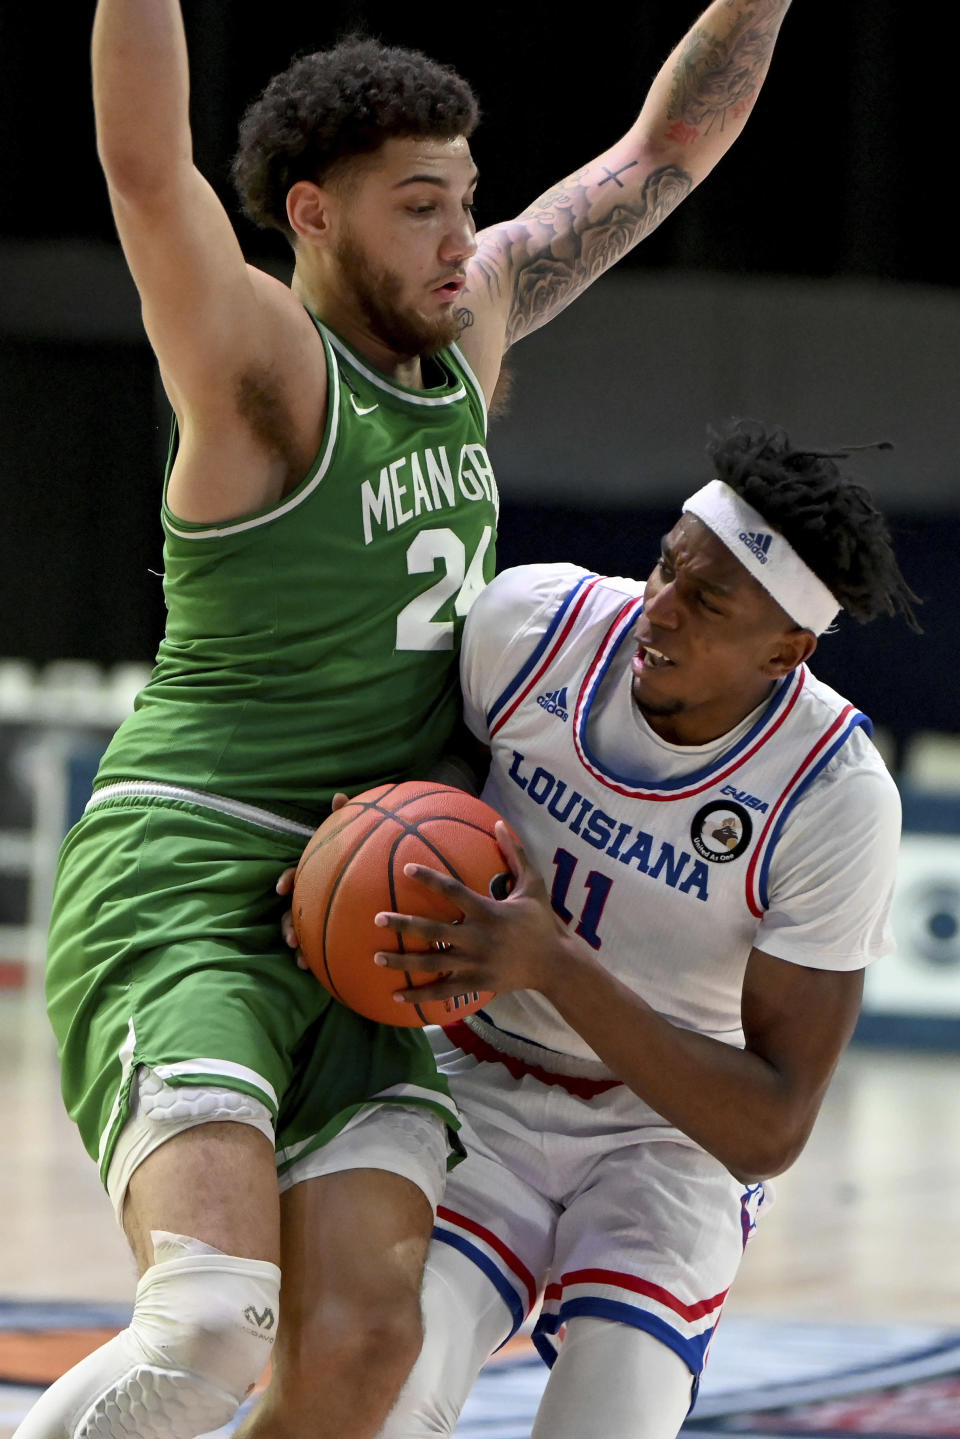 Louisiana Tech guard JaColby Pemberton (11) tries to drive against North Texas forward Zachary Simmons (24) in the second half of an NCAA college basketball game in the Conference USA men's tournament, in Frisco, Texas, Friday, March 12, 2021. (AP Photo/Matt Strasen)